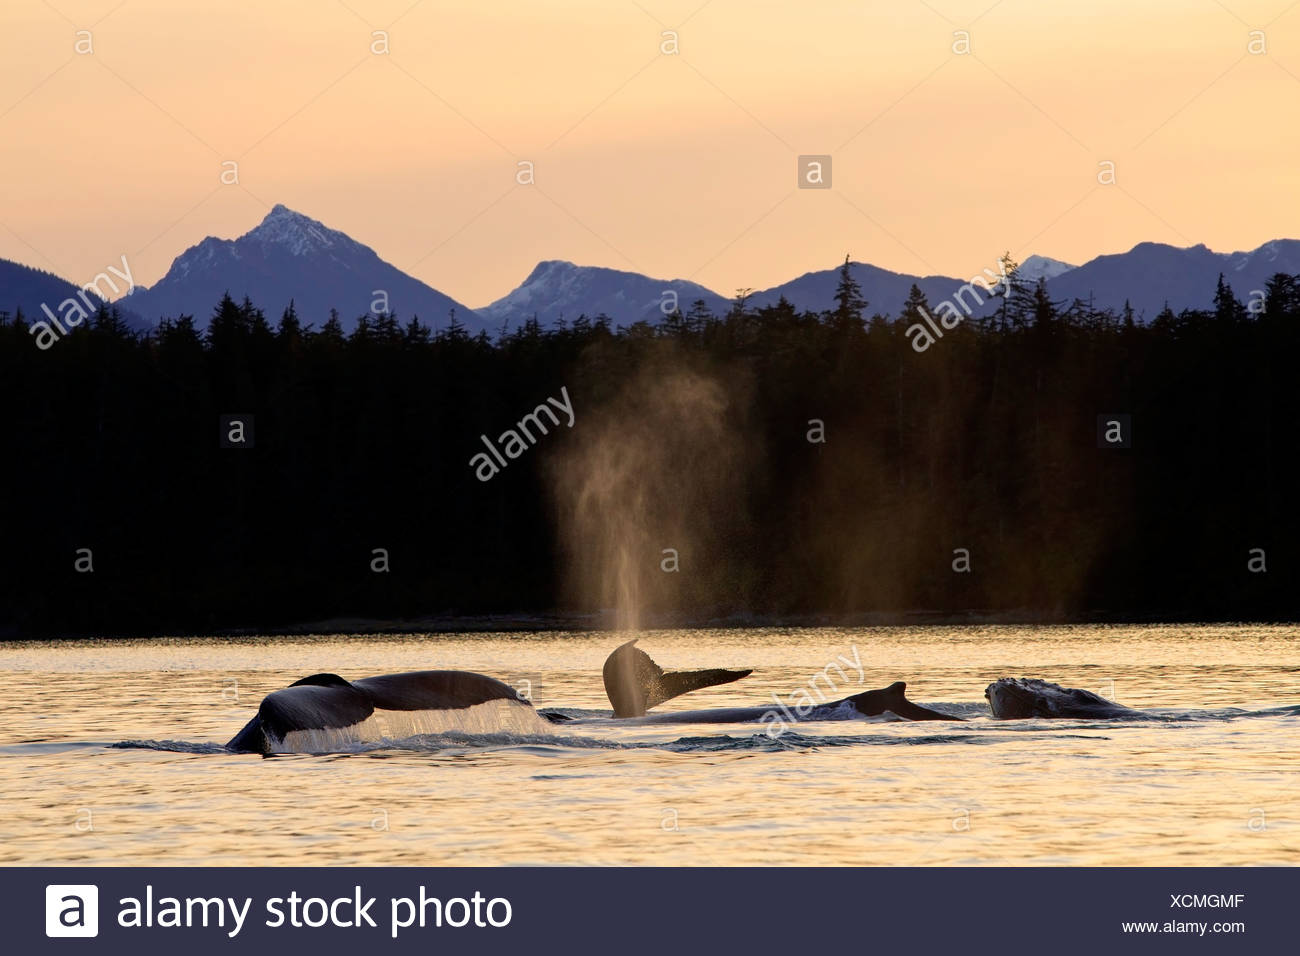 Humpback Whales swim along the shoreline of Admiralty Island at sunset, Stephens Passage, Inside Passage, Alaska - Stock Image